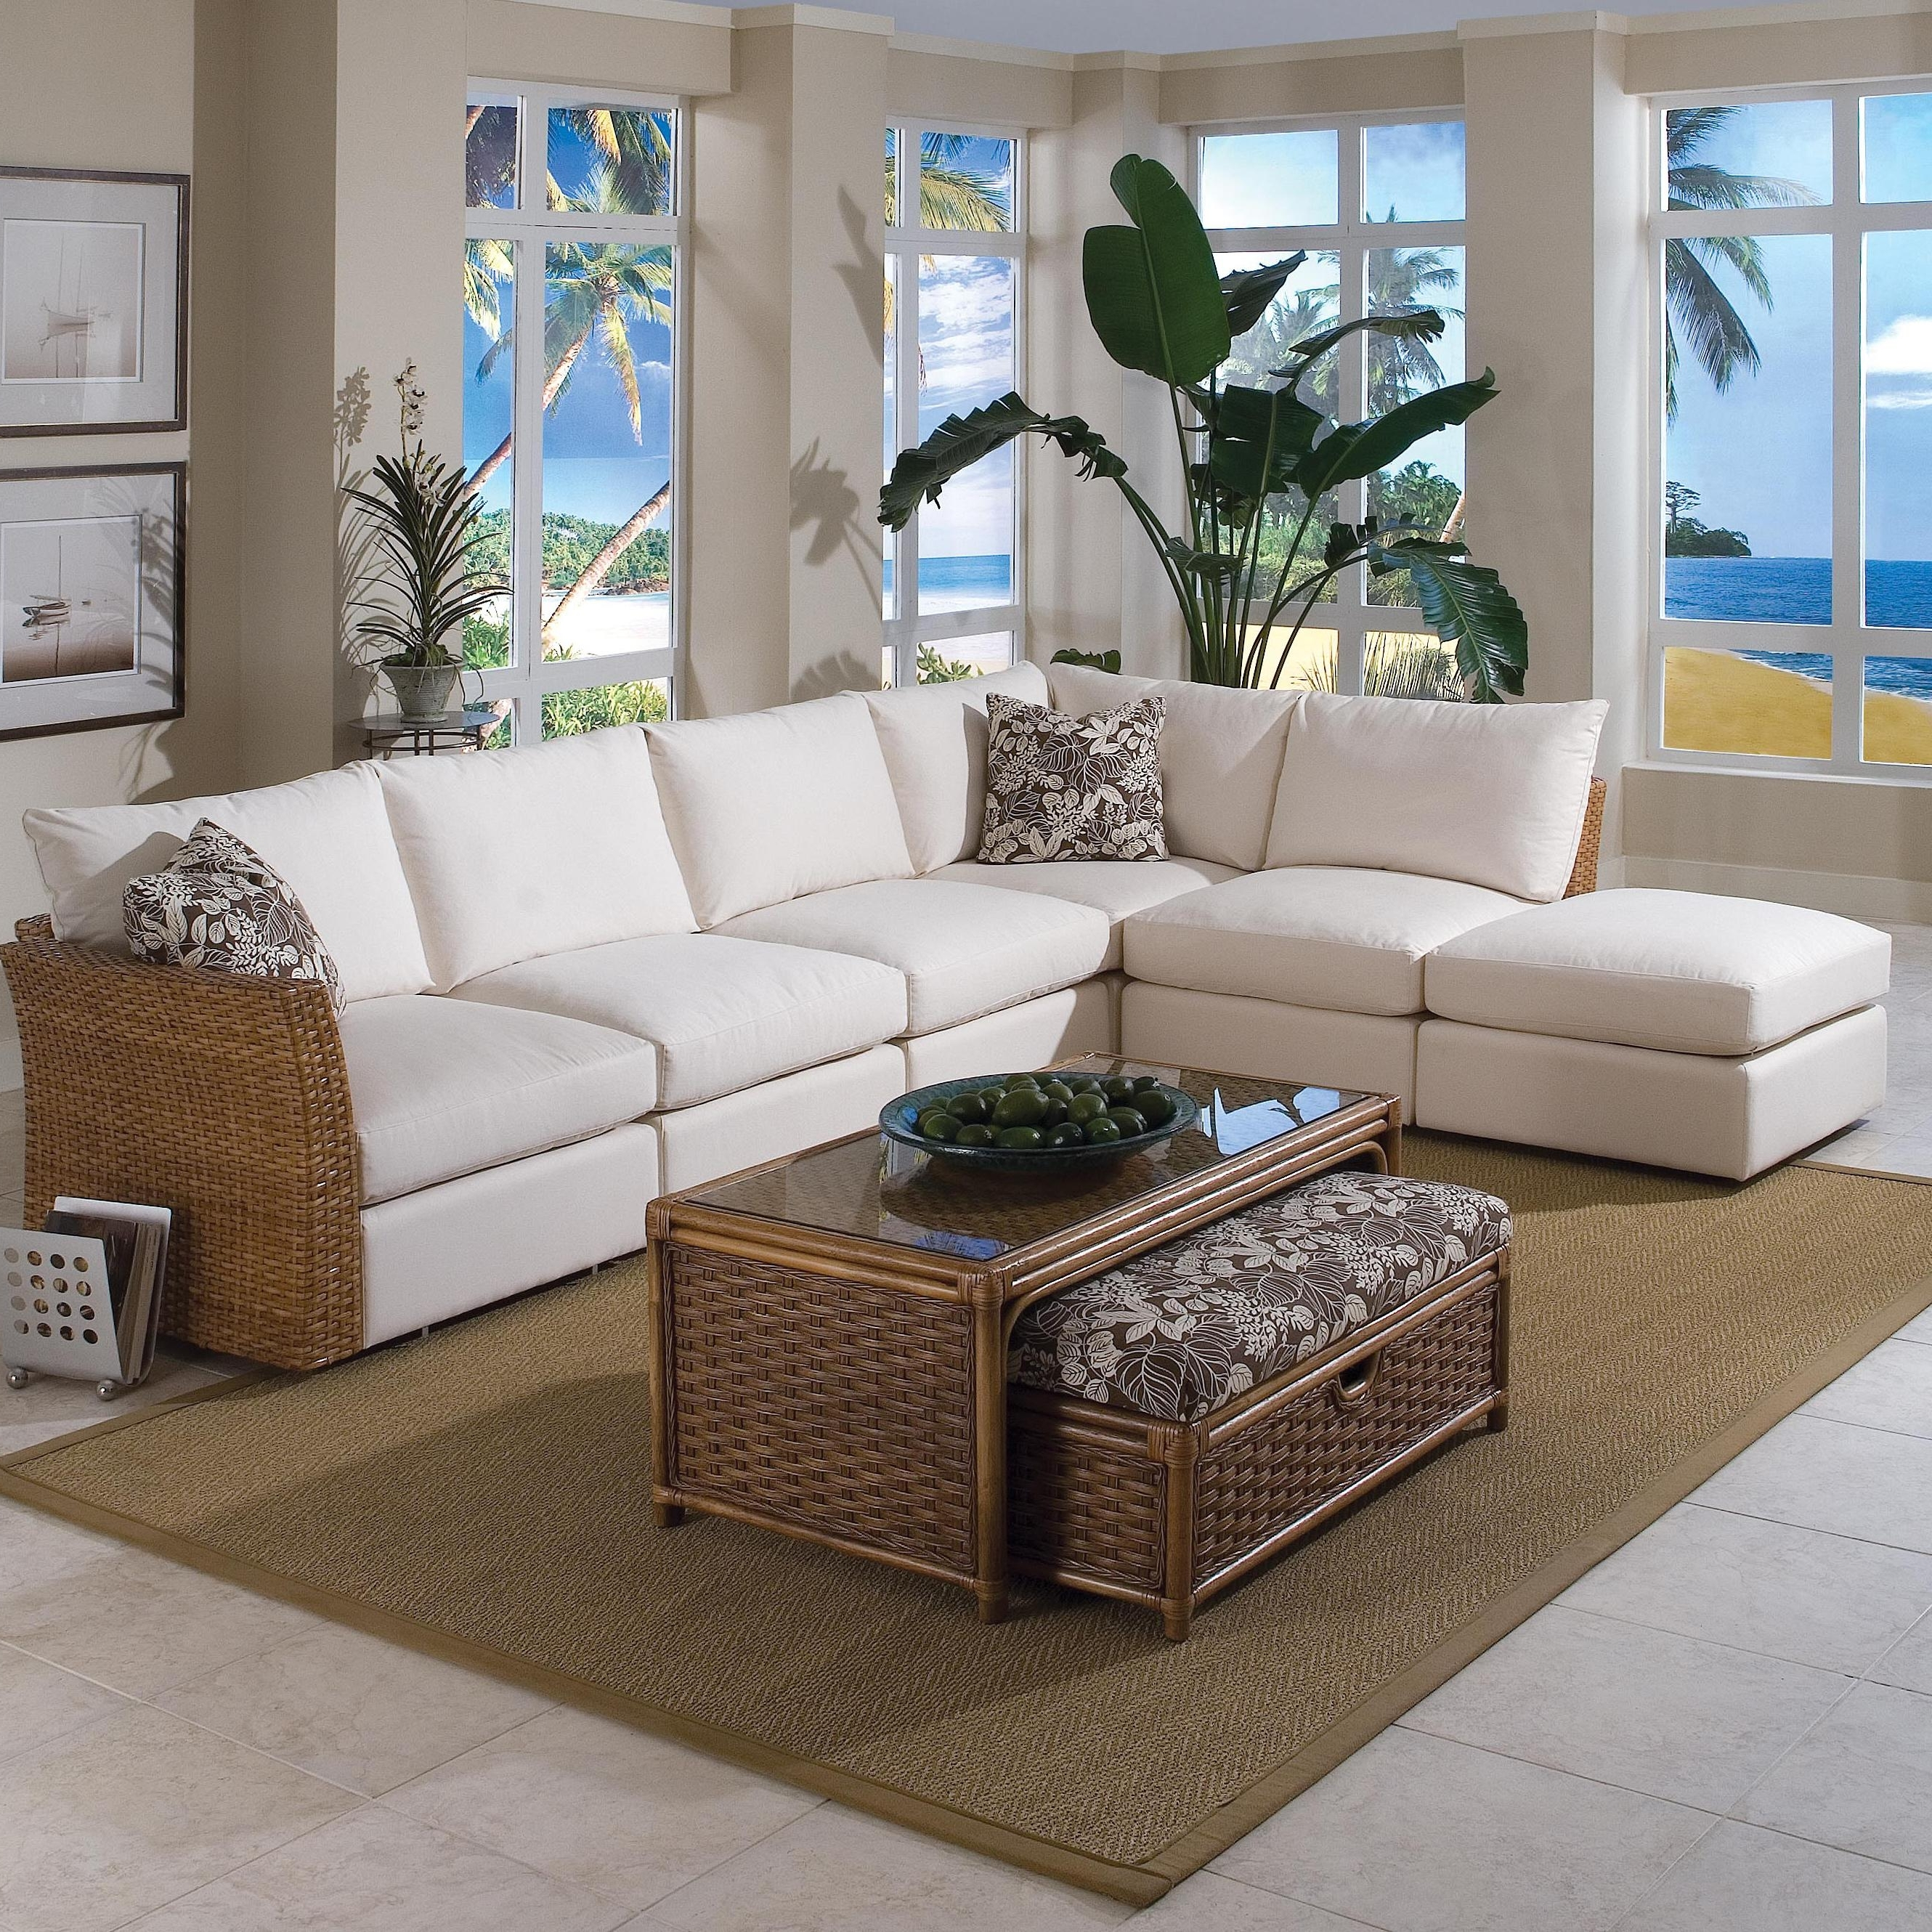 Widely Used Lubbock Sectional Sofas Pertaining To Braxton Culler Grand Water Point Tropical Sectional Sofa With Two (View 20 of 20)